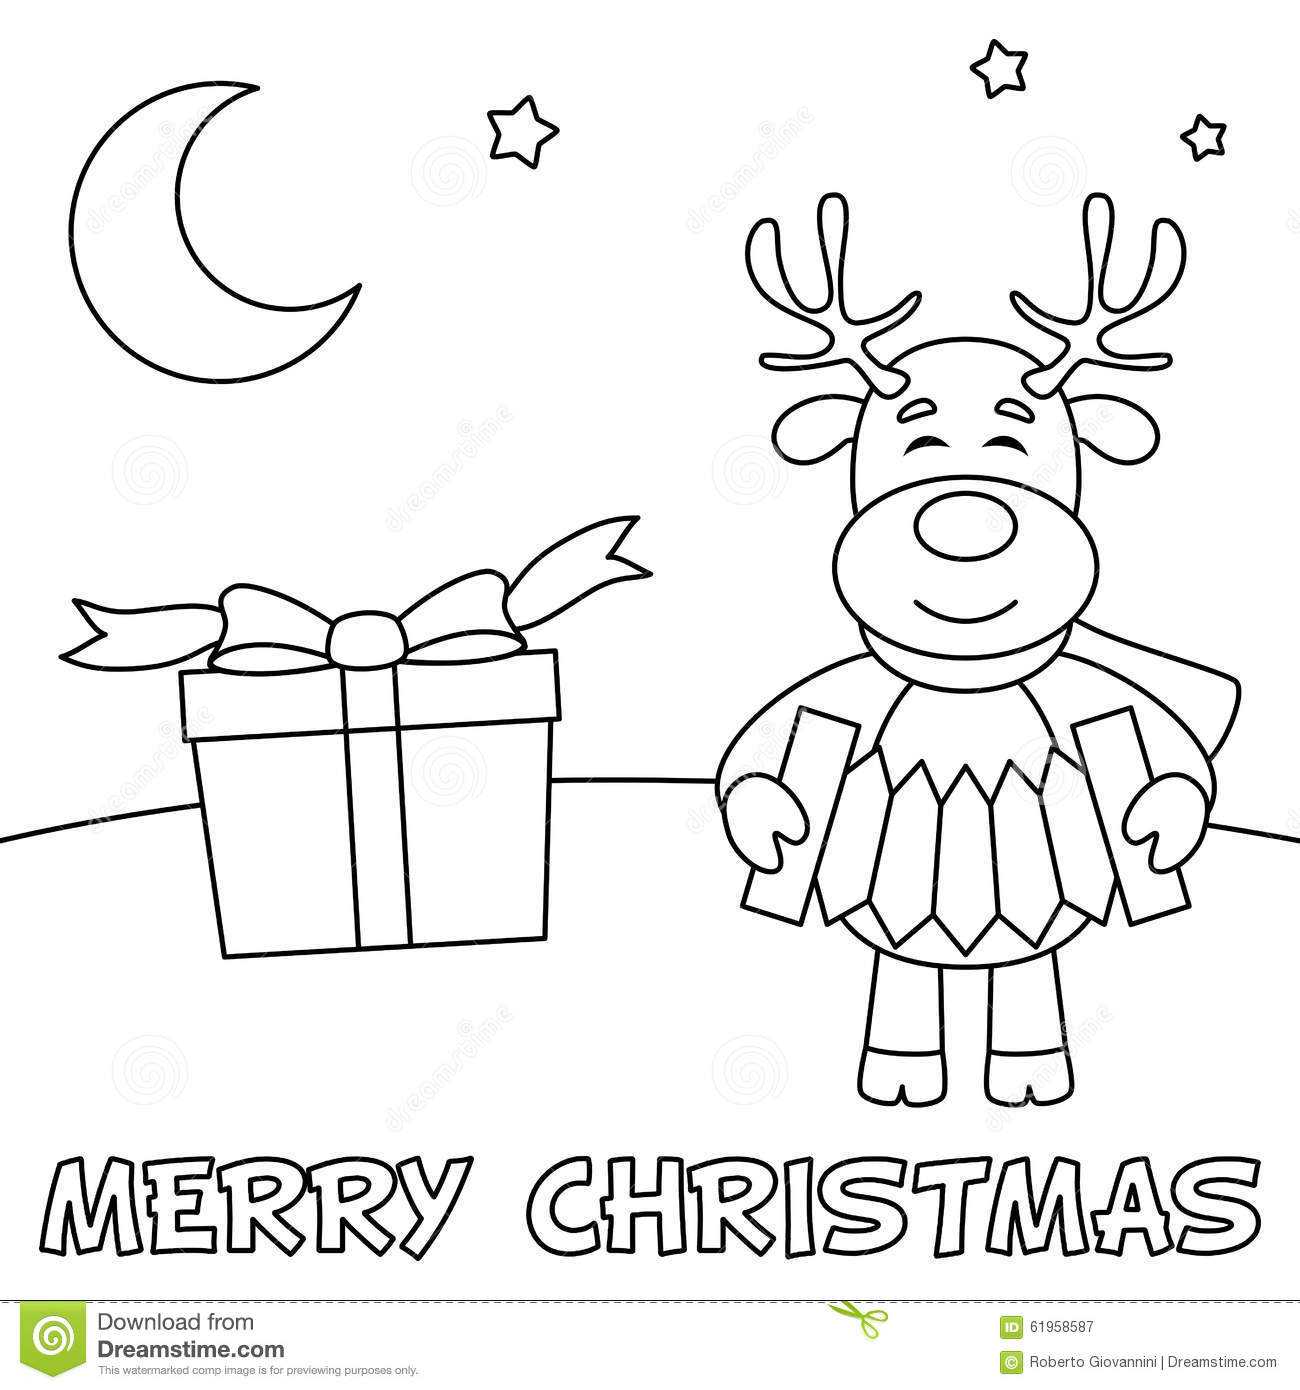 Coloring Christmas Card With Reindeer Stock Vector ...